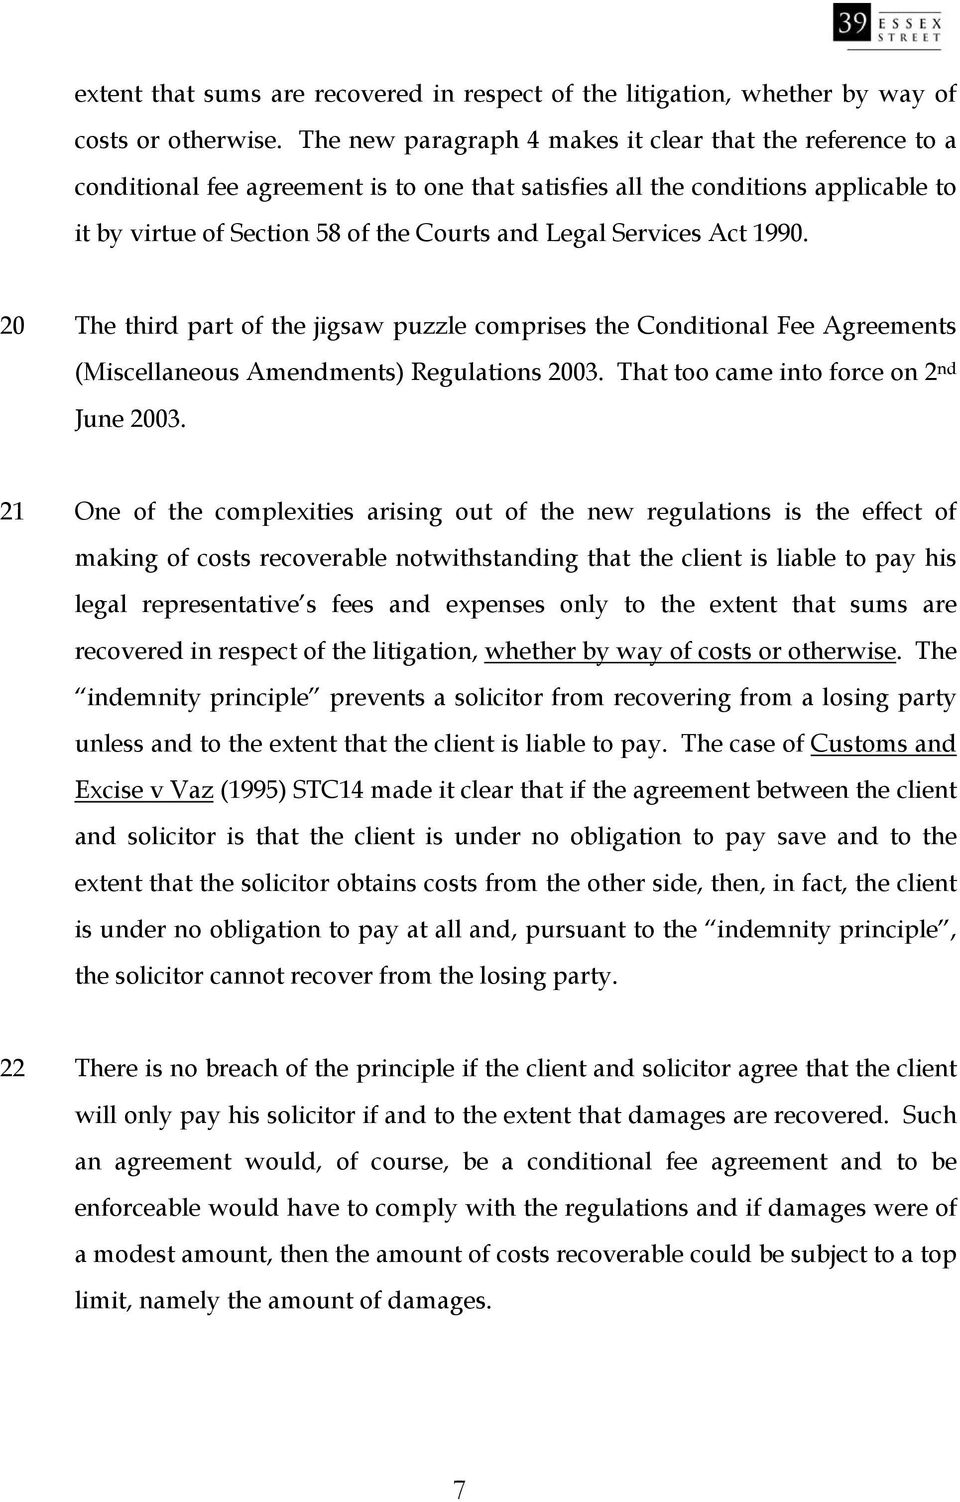 Services Act 1990. 20 The third part of the jigsaw puzzle comprises the Conditional Fee Agreements (Miscellaneous Amendments) Regulations 2003. That too came into force on 2 nd June 2003.